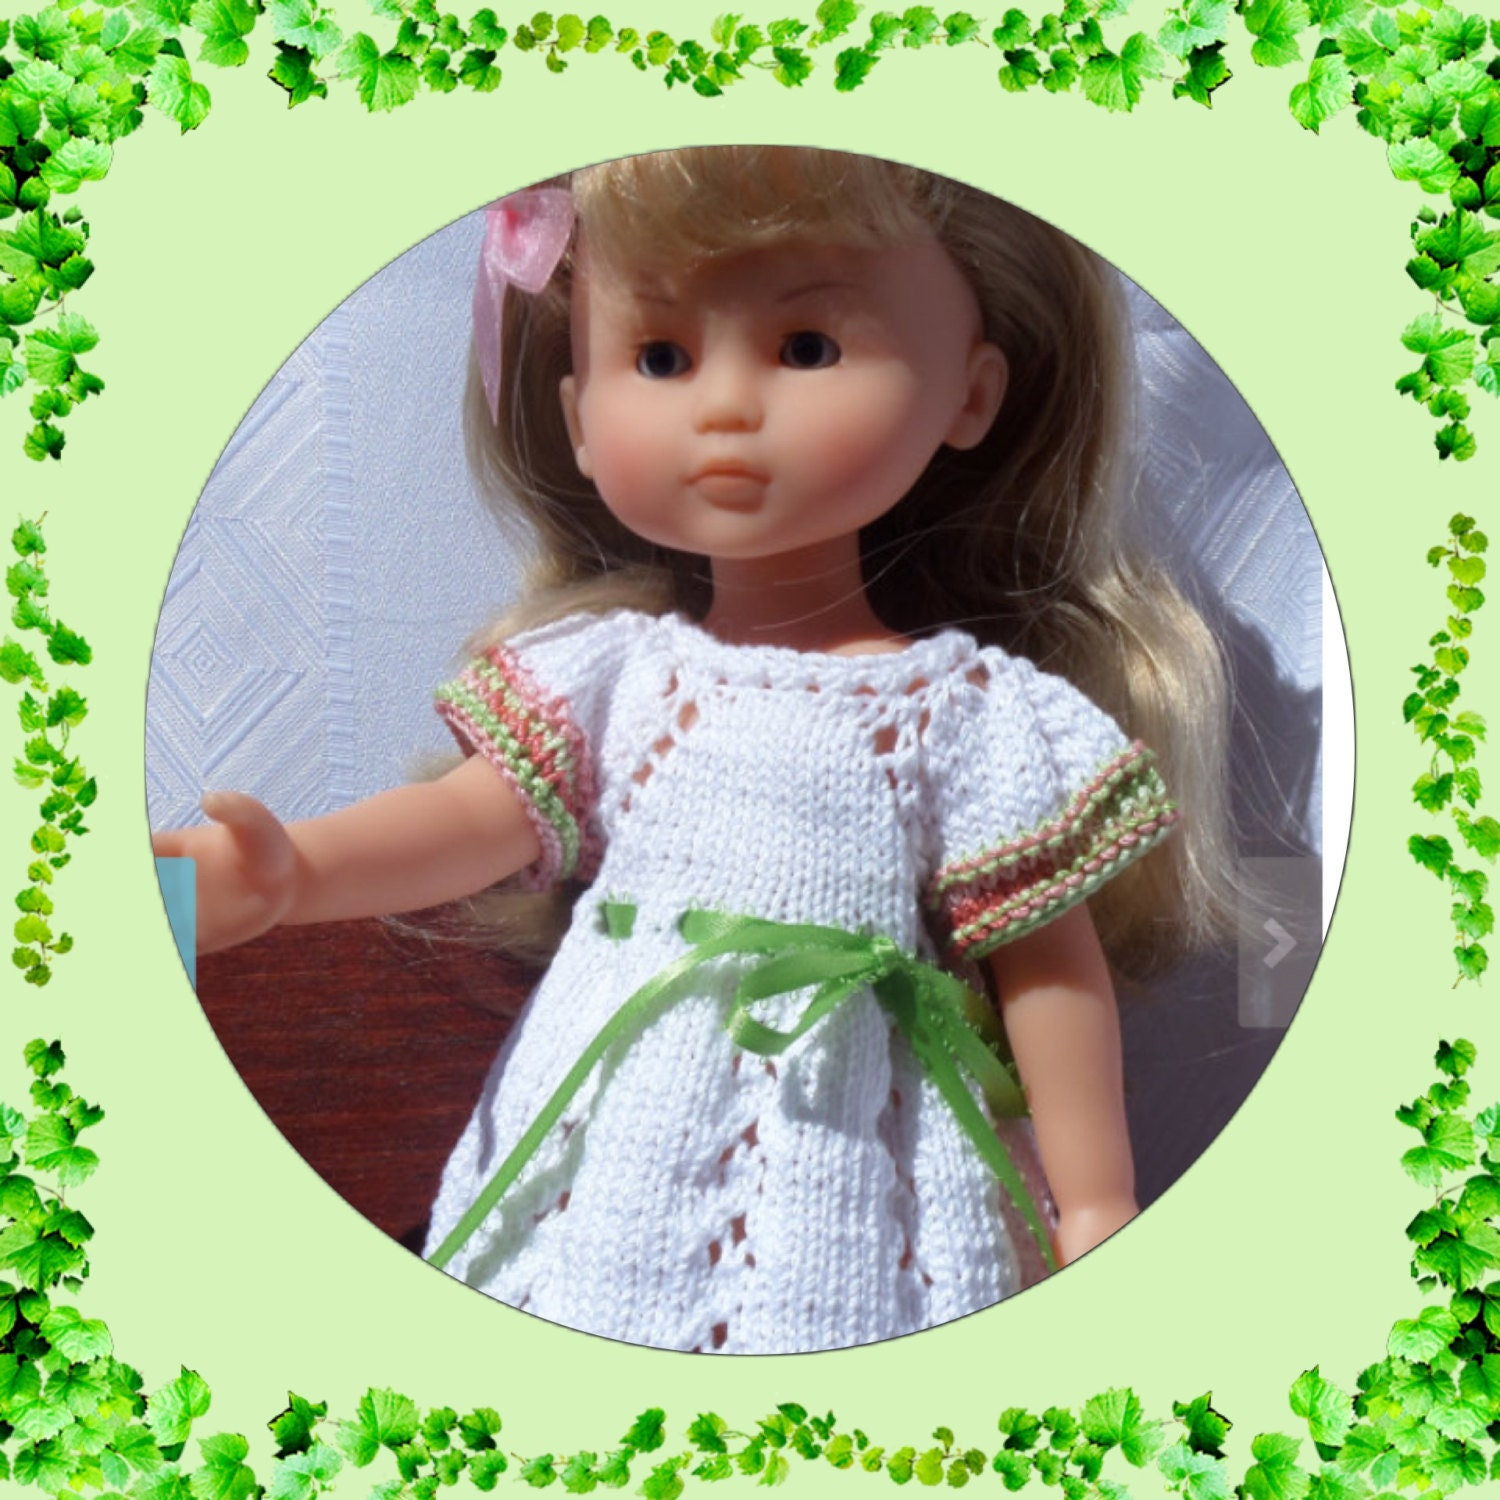 Knitting Patterns For 13 Inch Dolls : Knitting Pattern PDF download 13 inch dolls Les Cheries